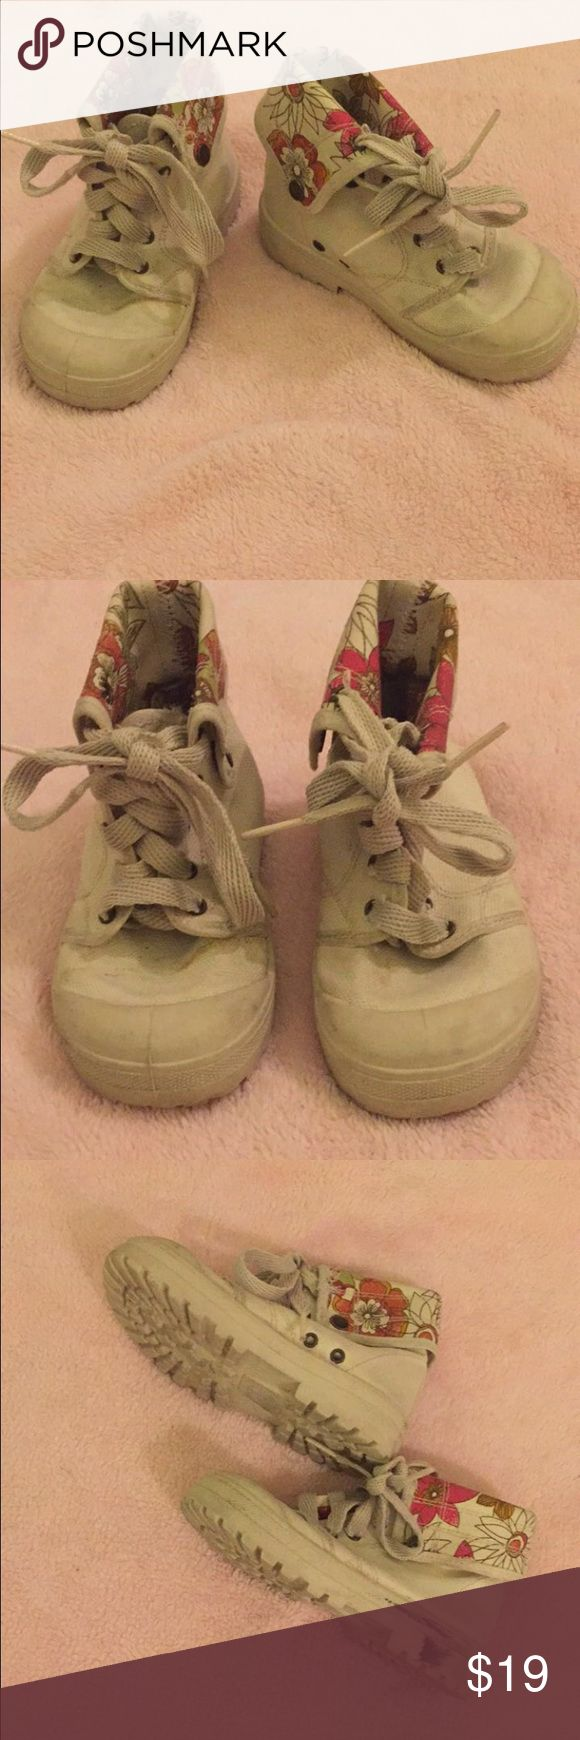 Zara Kids canvas high top boots shoes 26 9.5 US Zara Kids high top canvas boots in size Euro 26 (US 9.5). A little bit dirty but can be easily cleaned Zara Shoes Boots